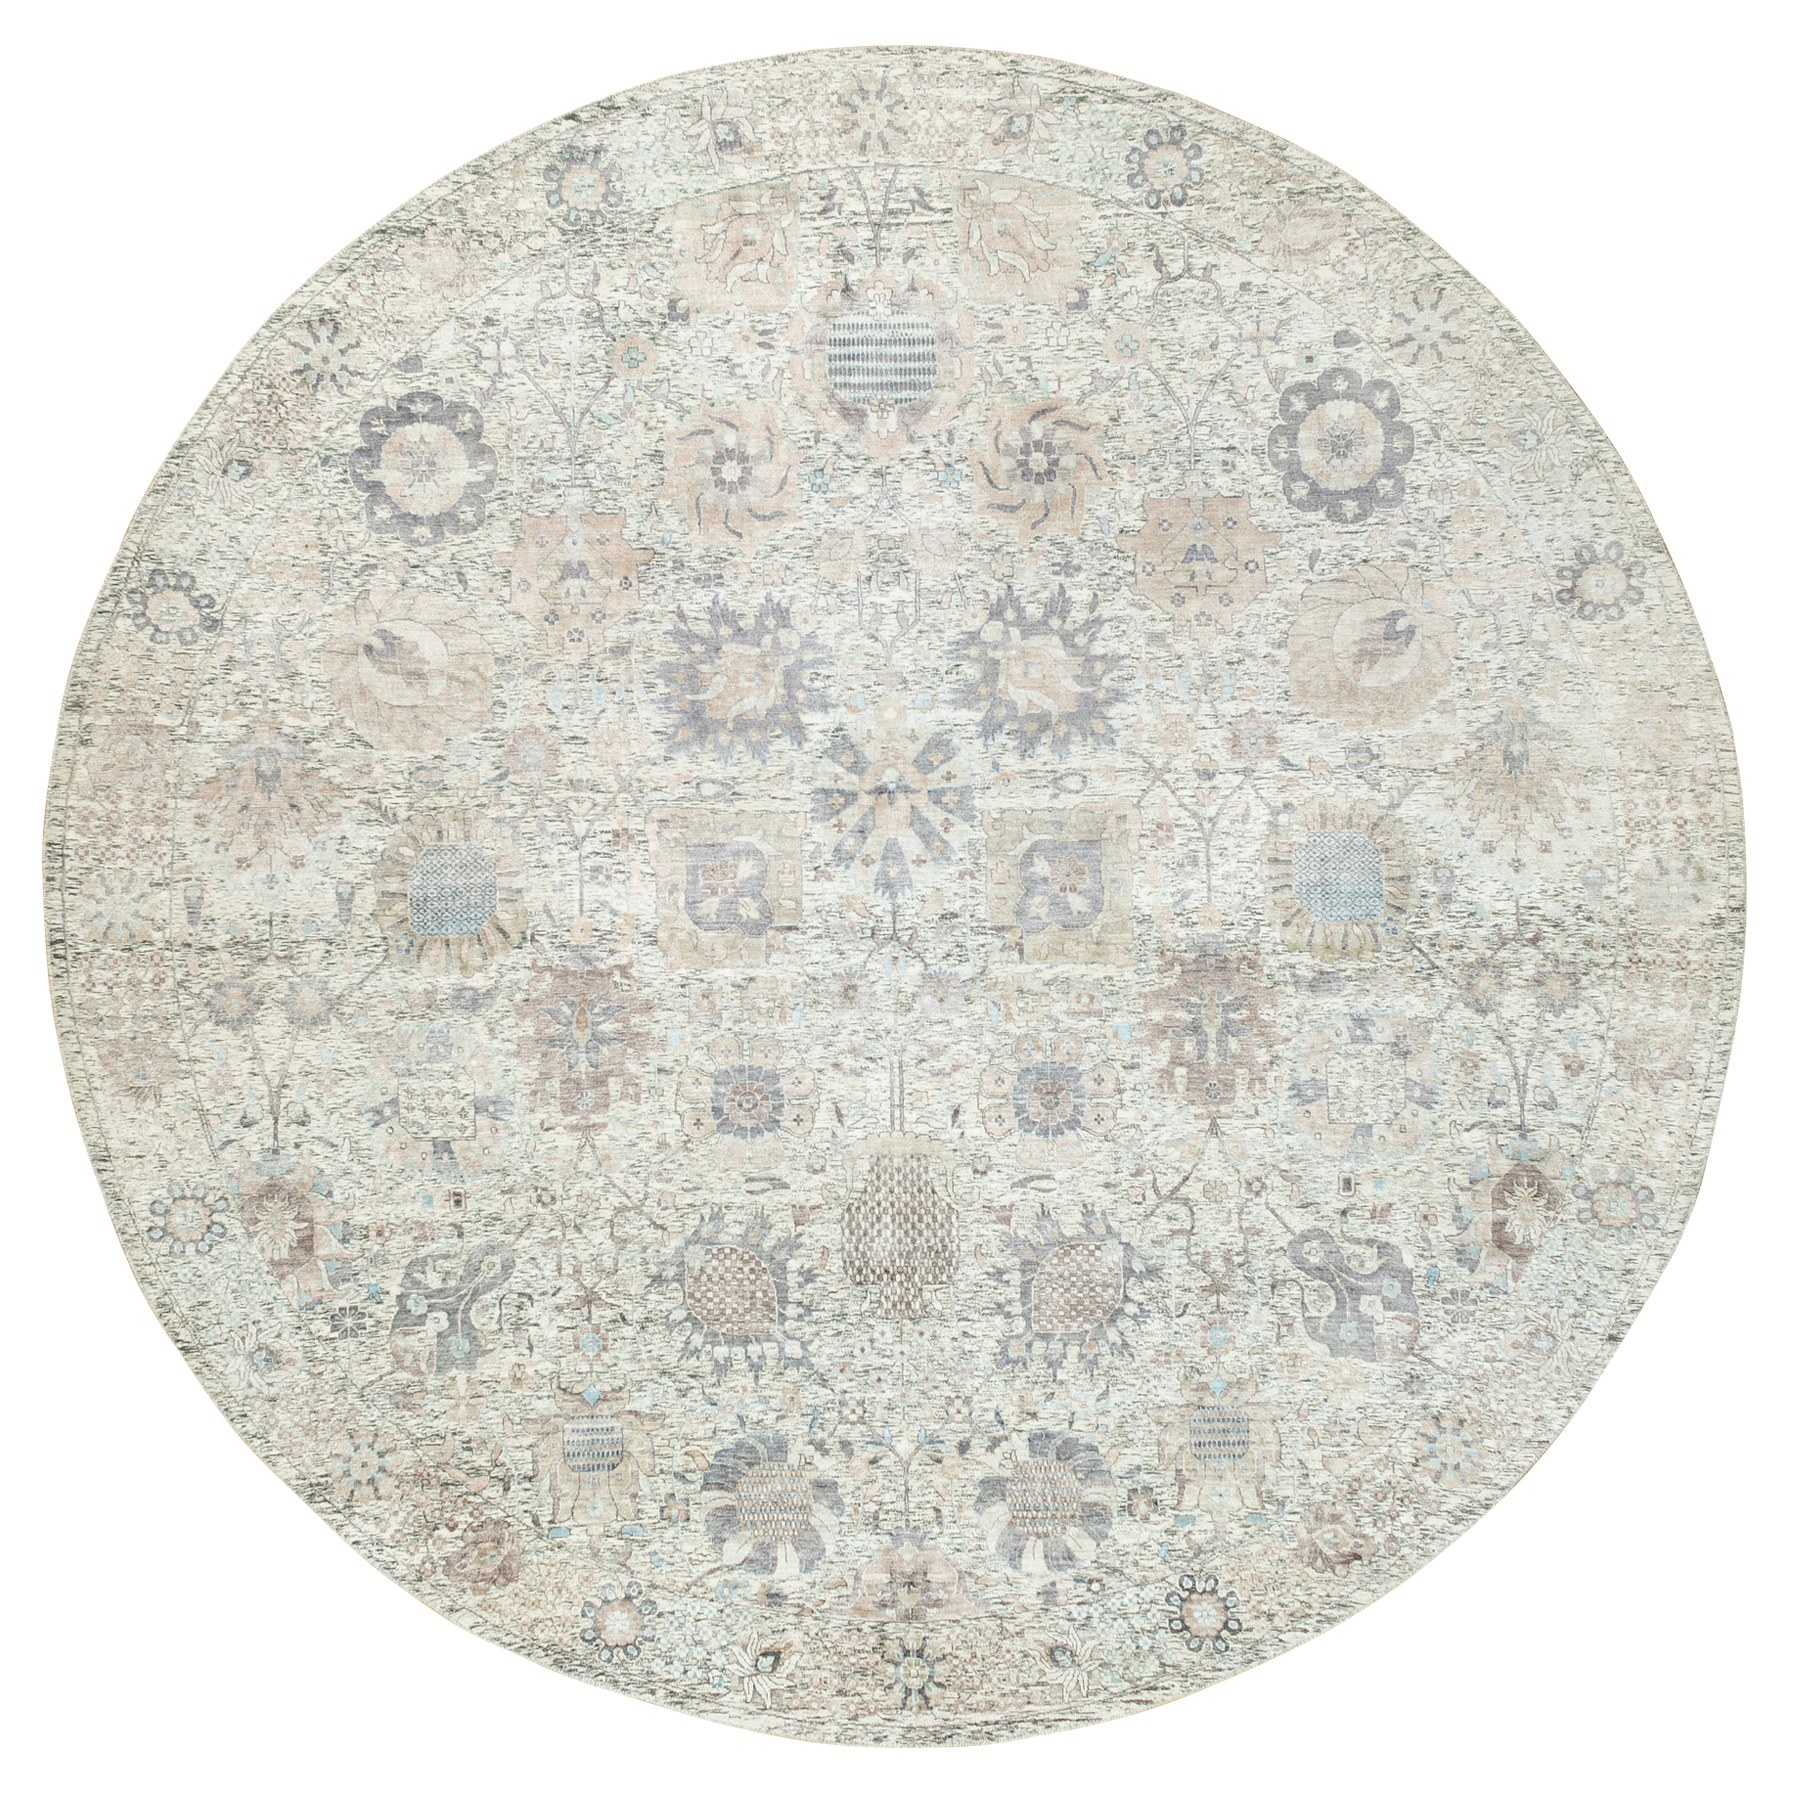 Transitional Rugs LUV530811